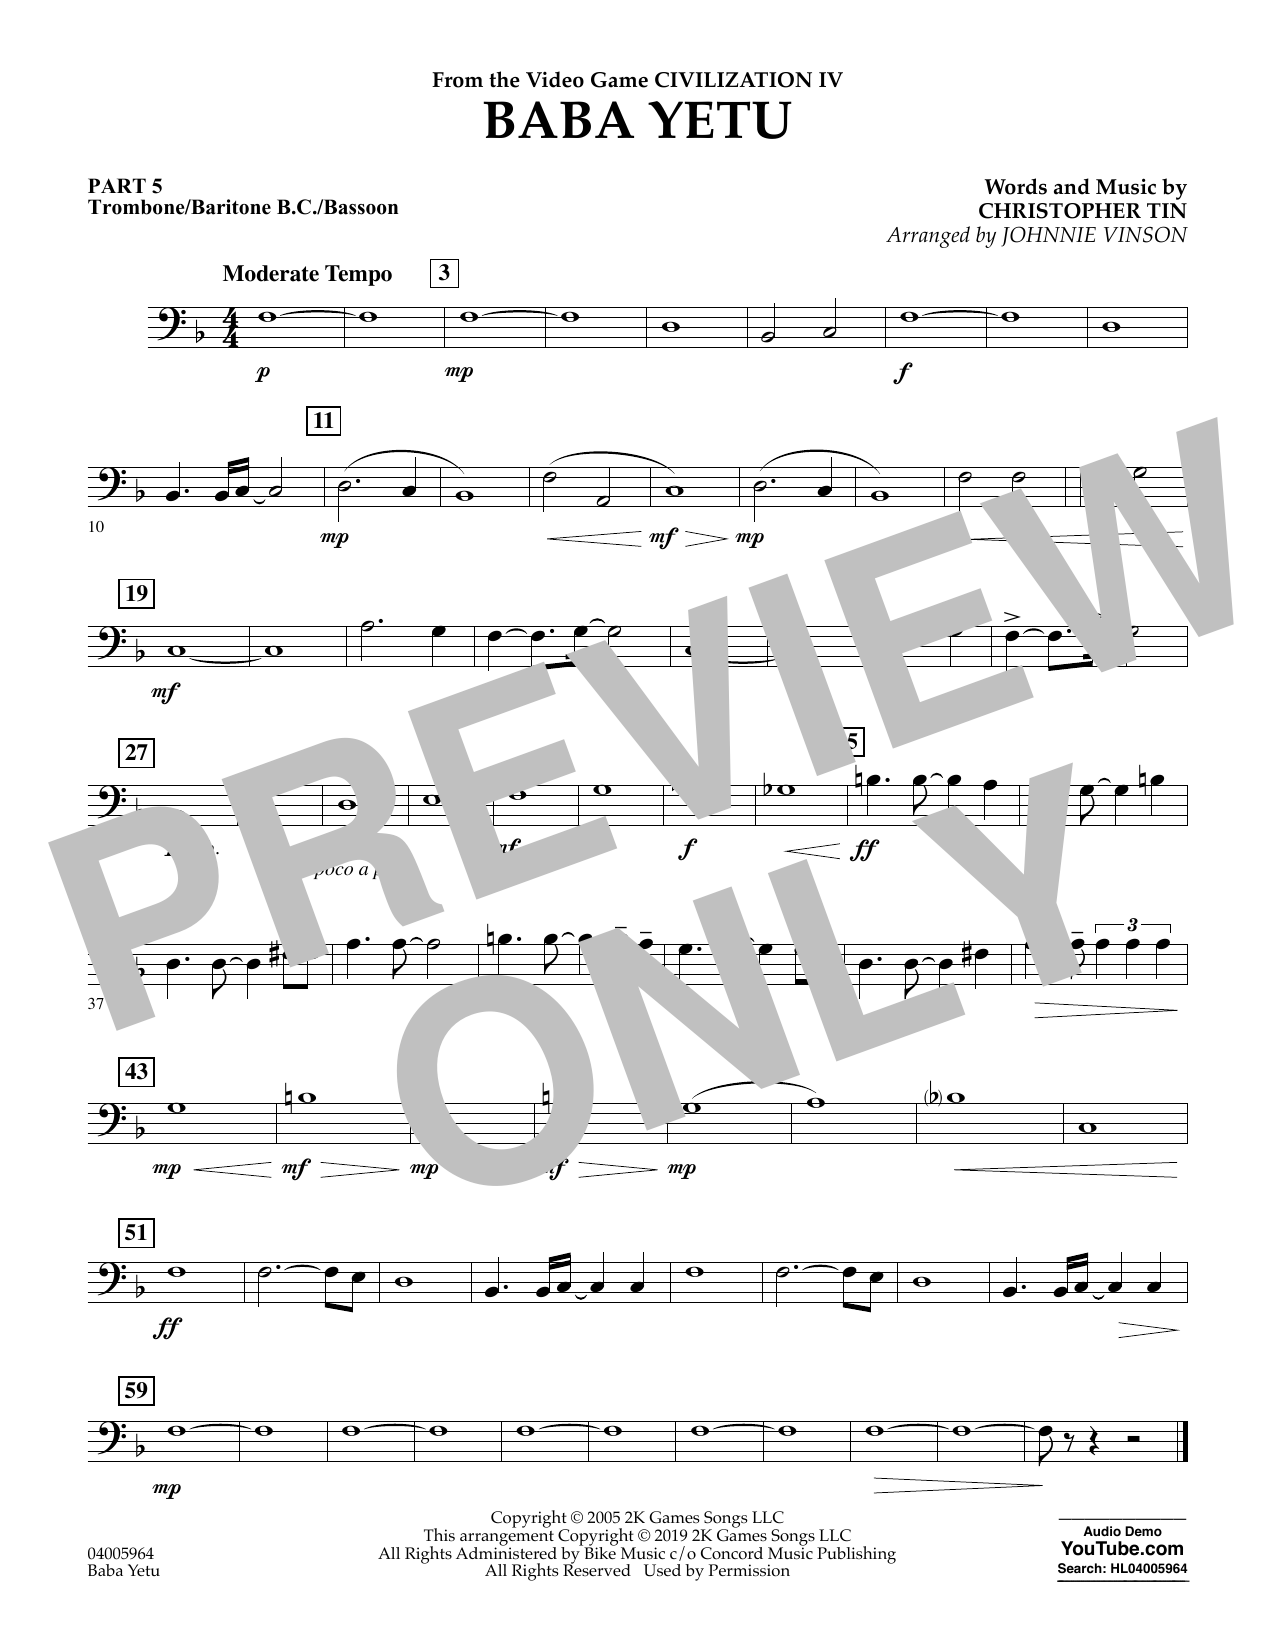 Christopher Tin Baba Yetu (from Civilization IV) (arr. Johnnie Vinson) - Pt.5 - Trombone/Bar. B.C./Bsn. sheet music notes and chords. Download Printable PDF.